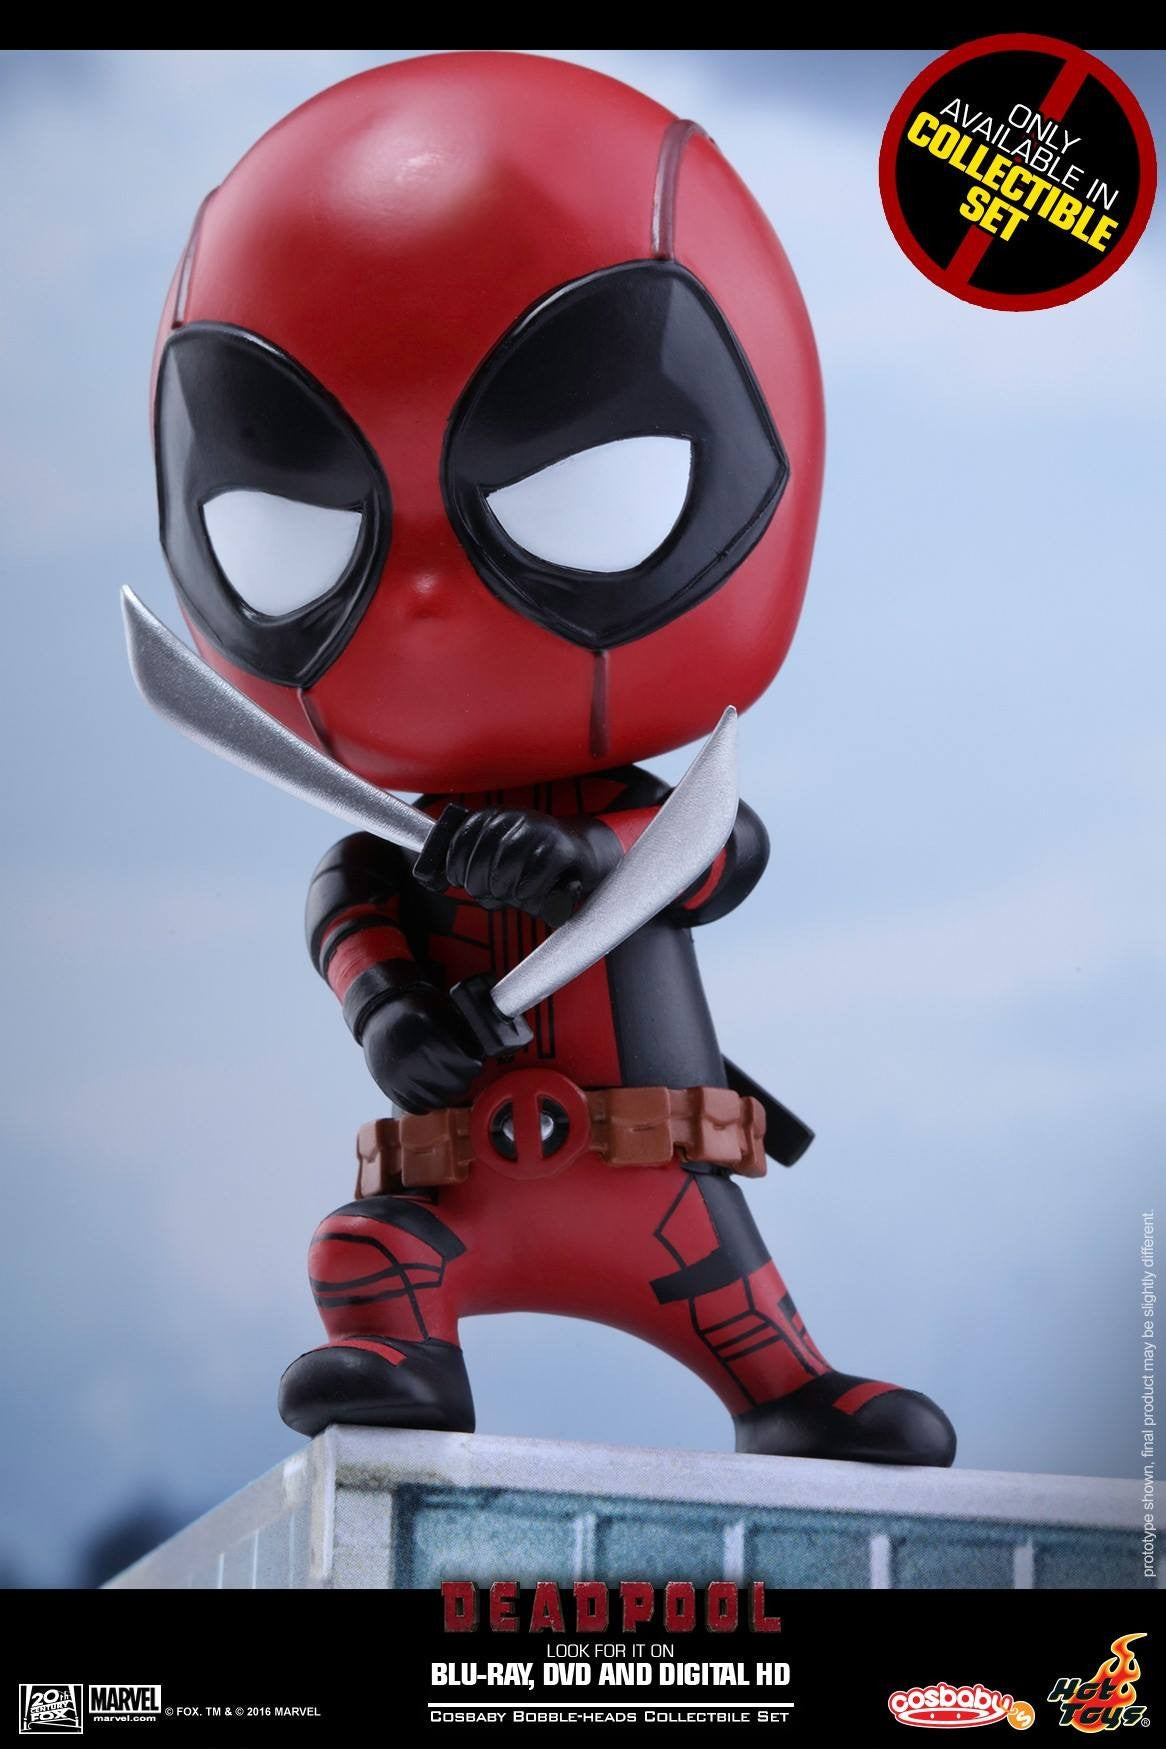 Hot Toys - COSB246 - Deadpool (Surprised, Fighting Pose, Heart Gesturing Versions) Cosbaby Bobble-Head Set - Marvelous Toys - 5